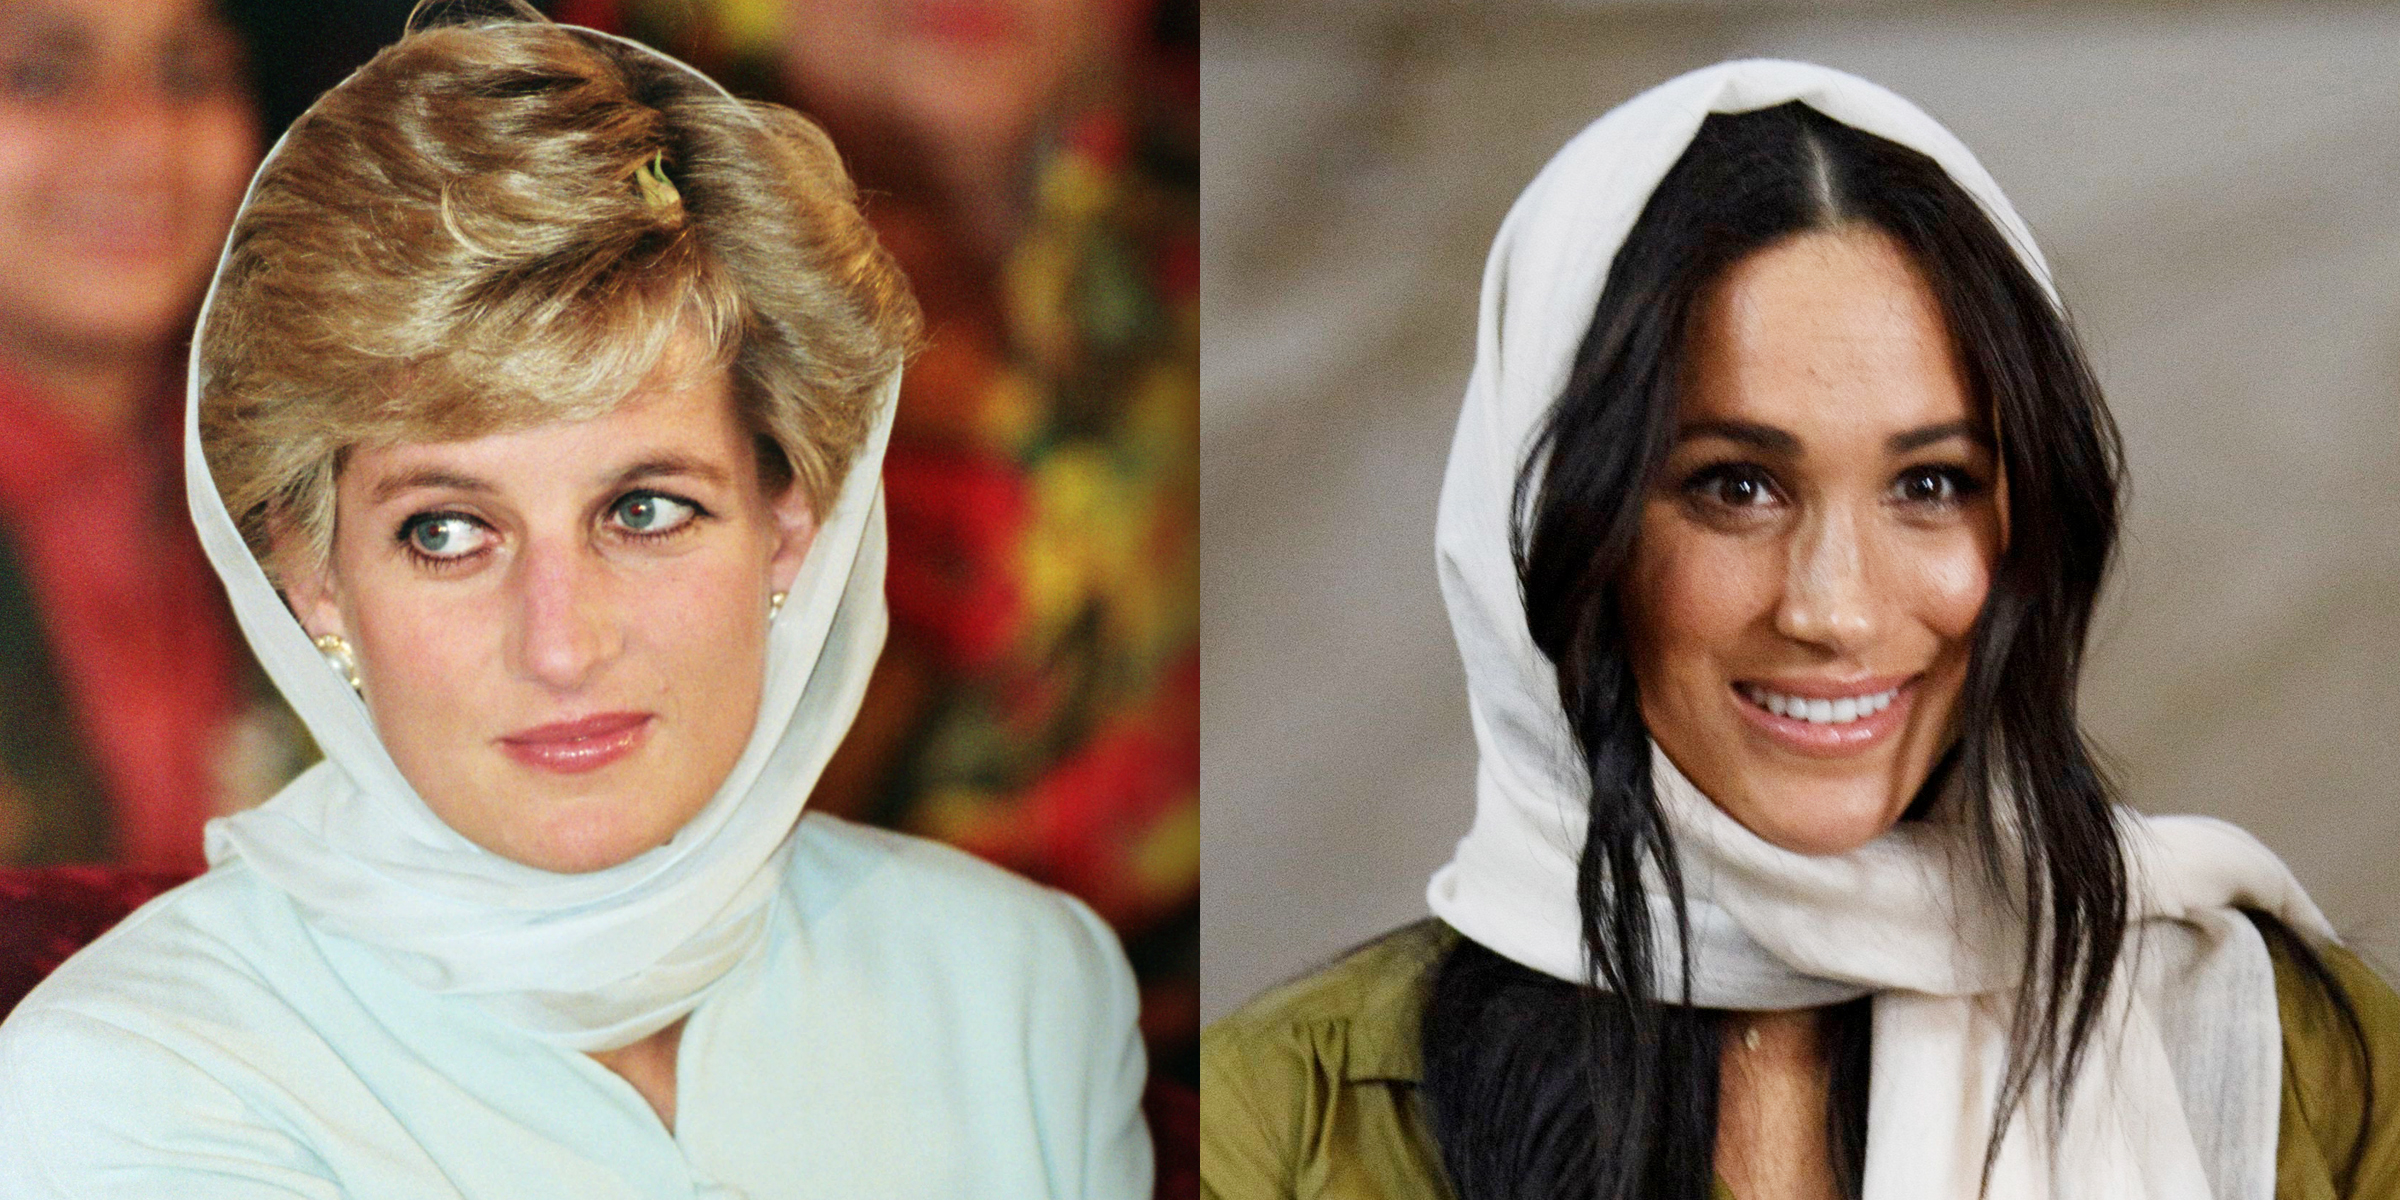 meghan markle channels princess diana in headscarf during south africa visit today show